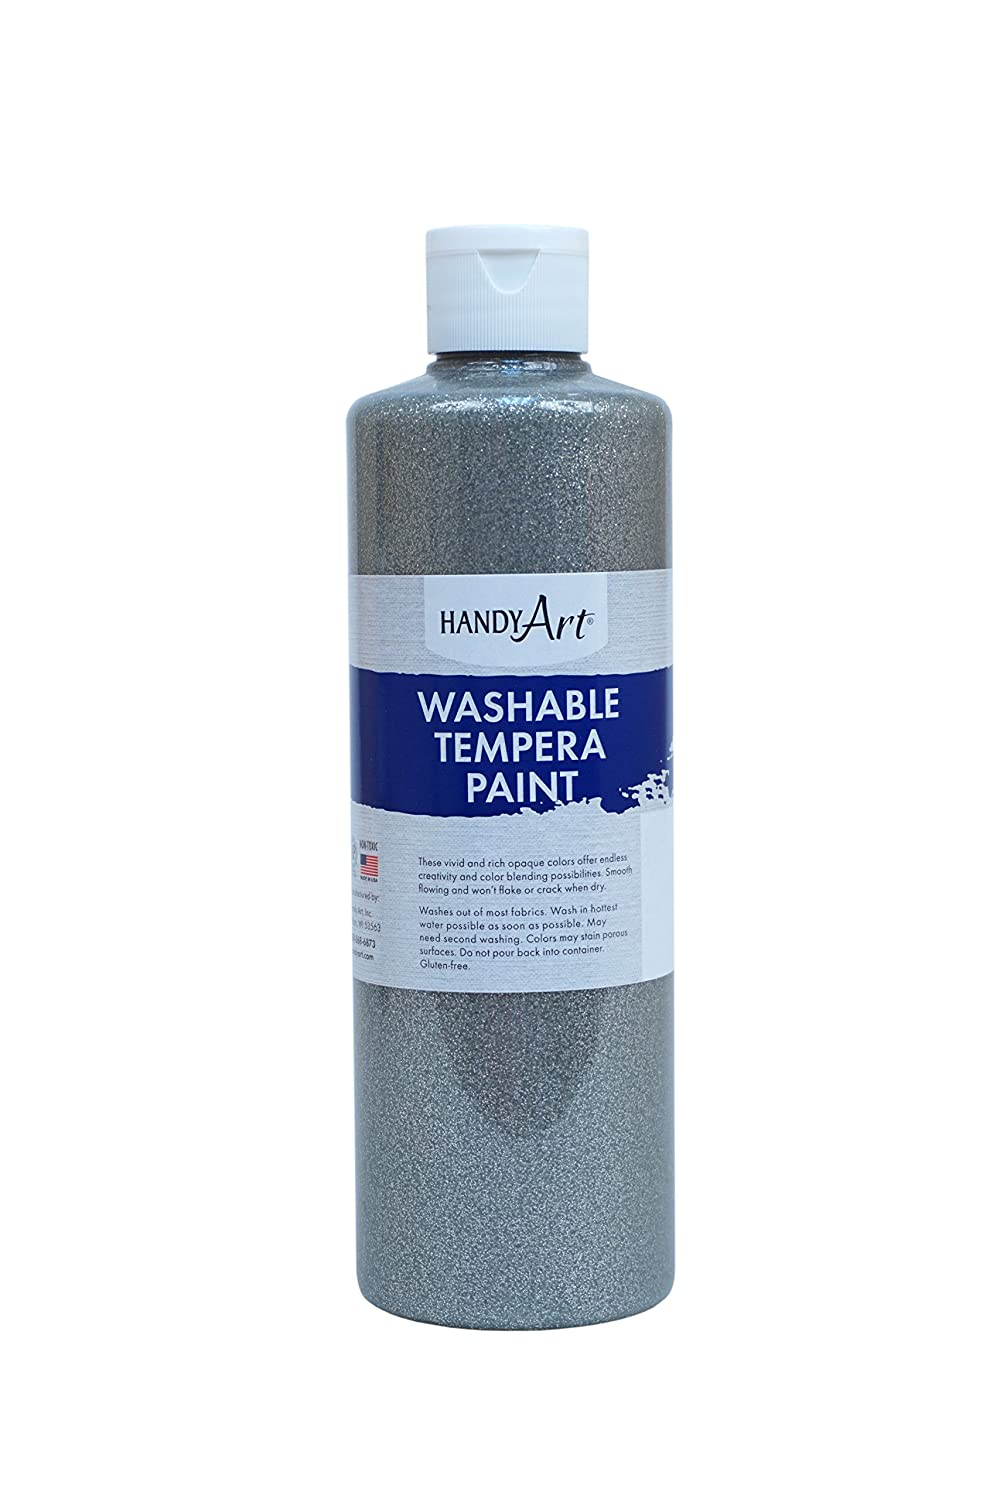 Handy Art Glitter Washable Paint 16 ounce, Silver